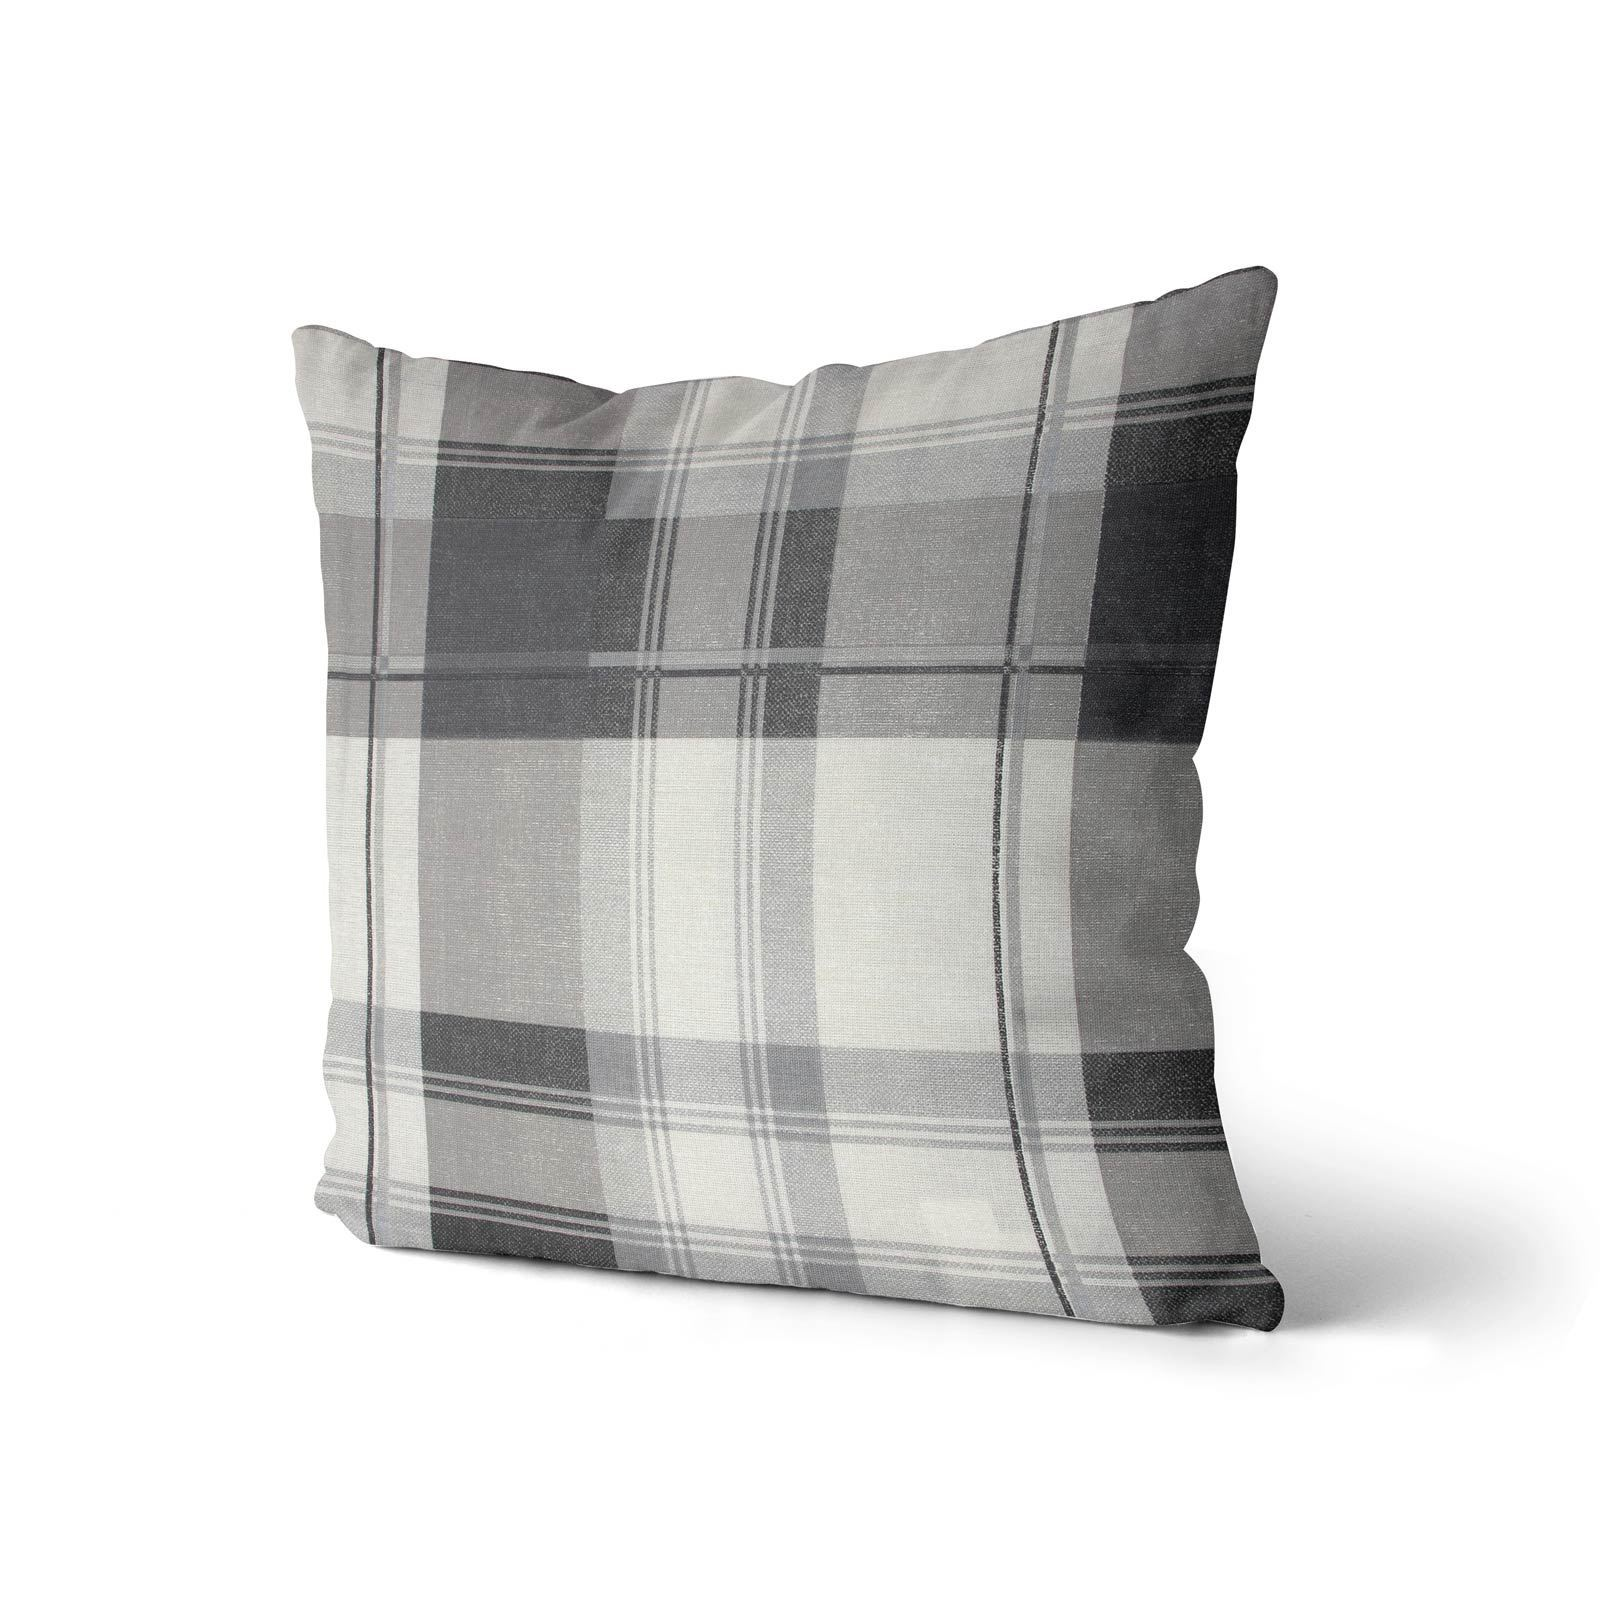 Grey-Ochre-Mustard-Cushion-Cover-Collection-17-034-18-034-Covers-Filled-Cushions thumbnail 29